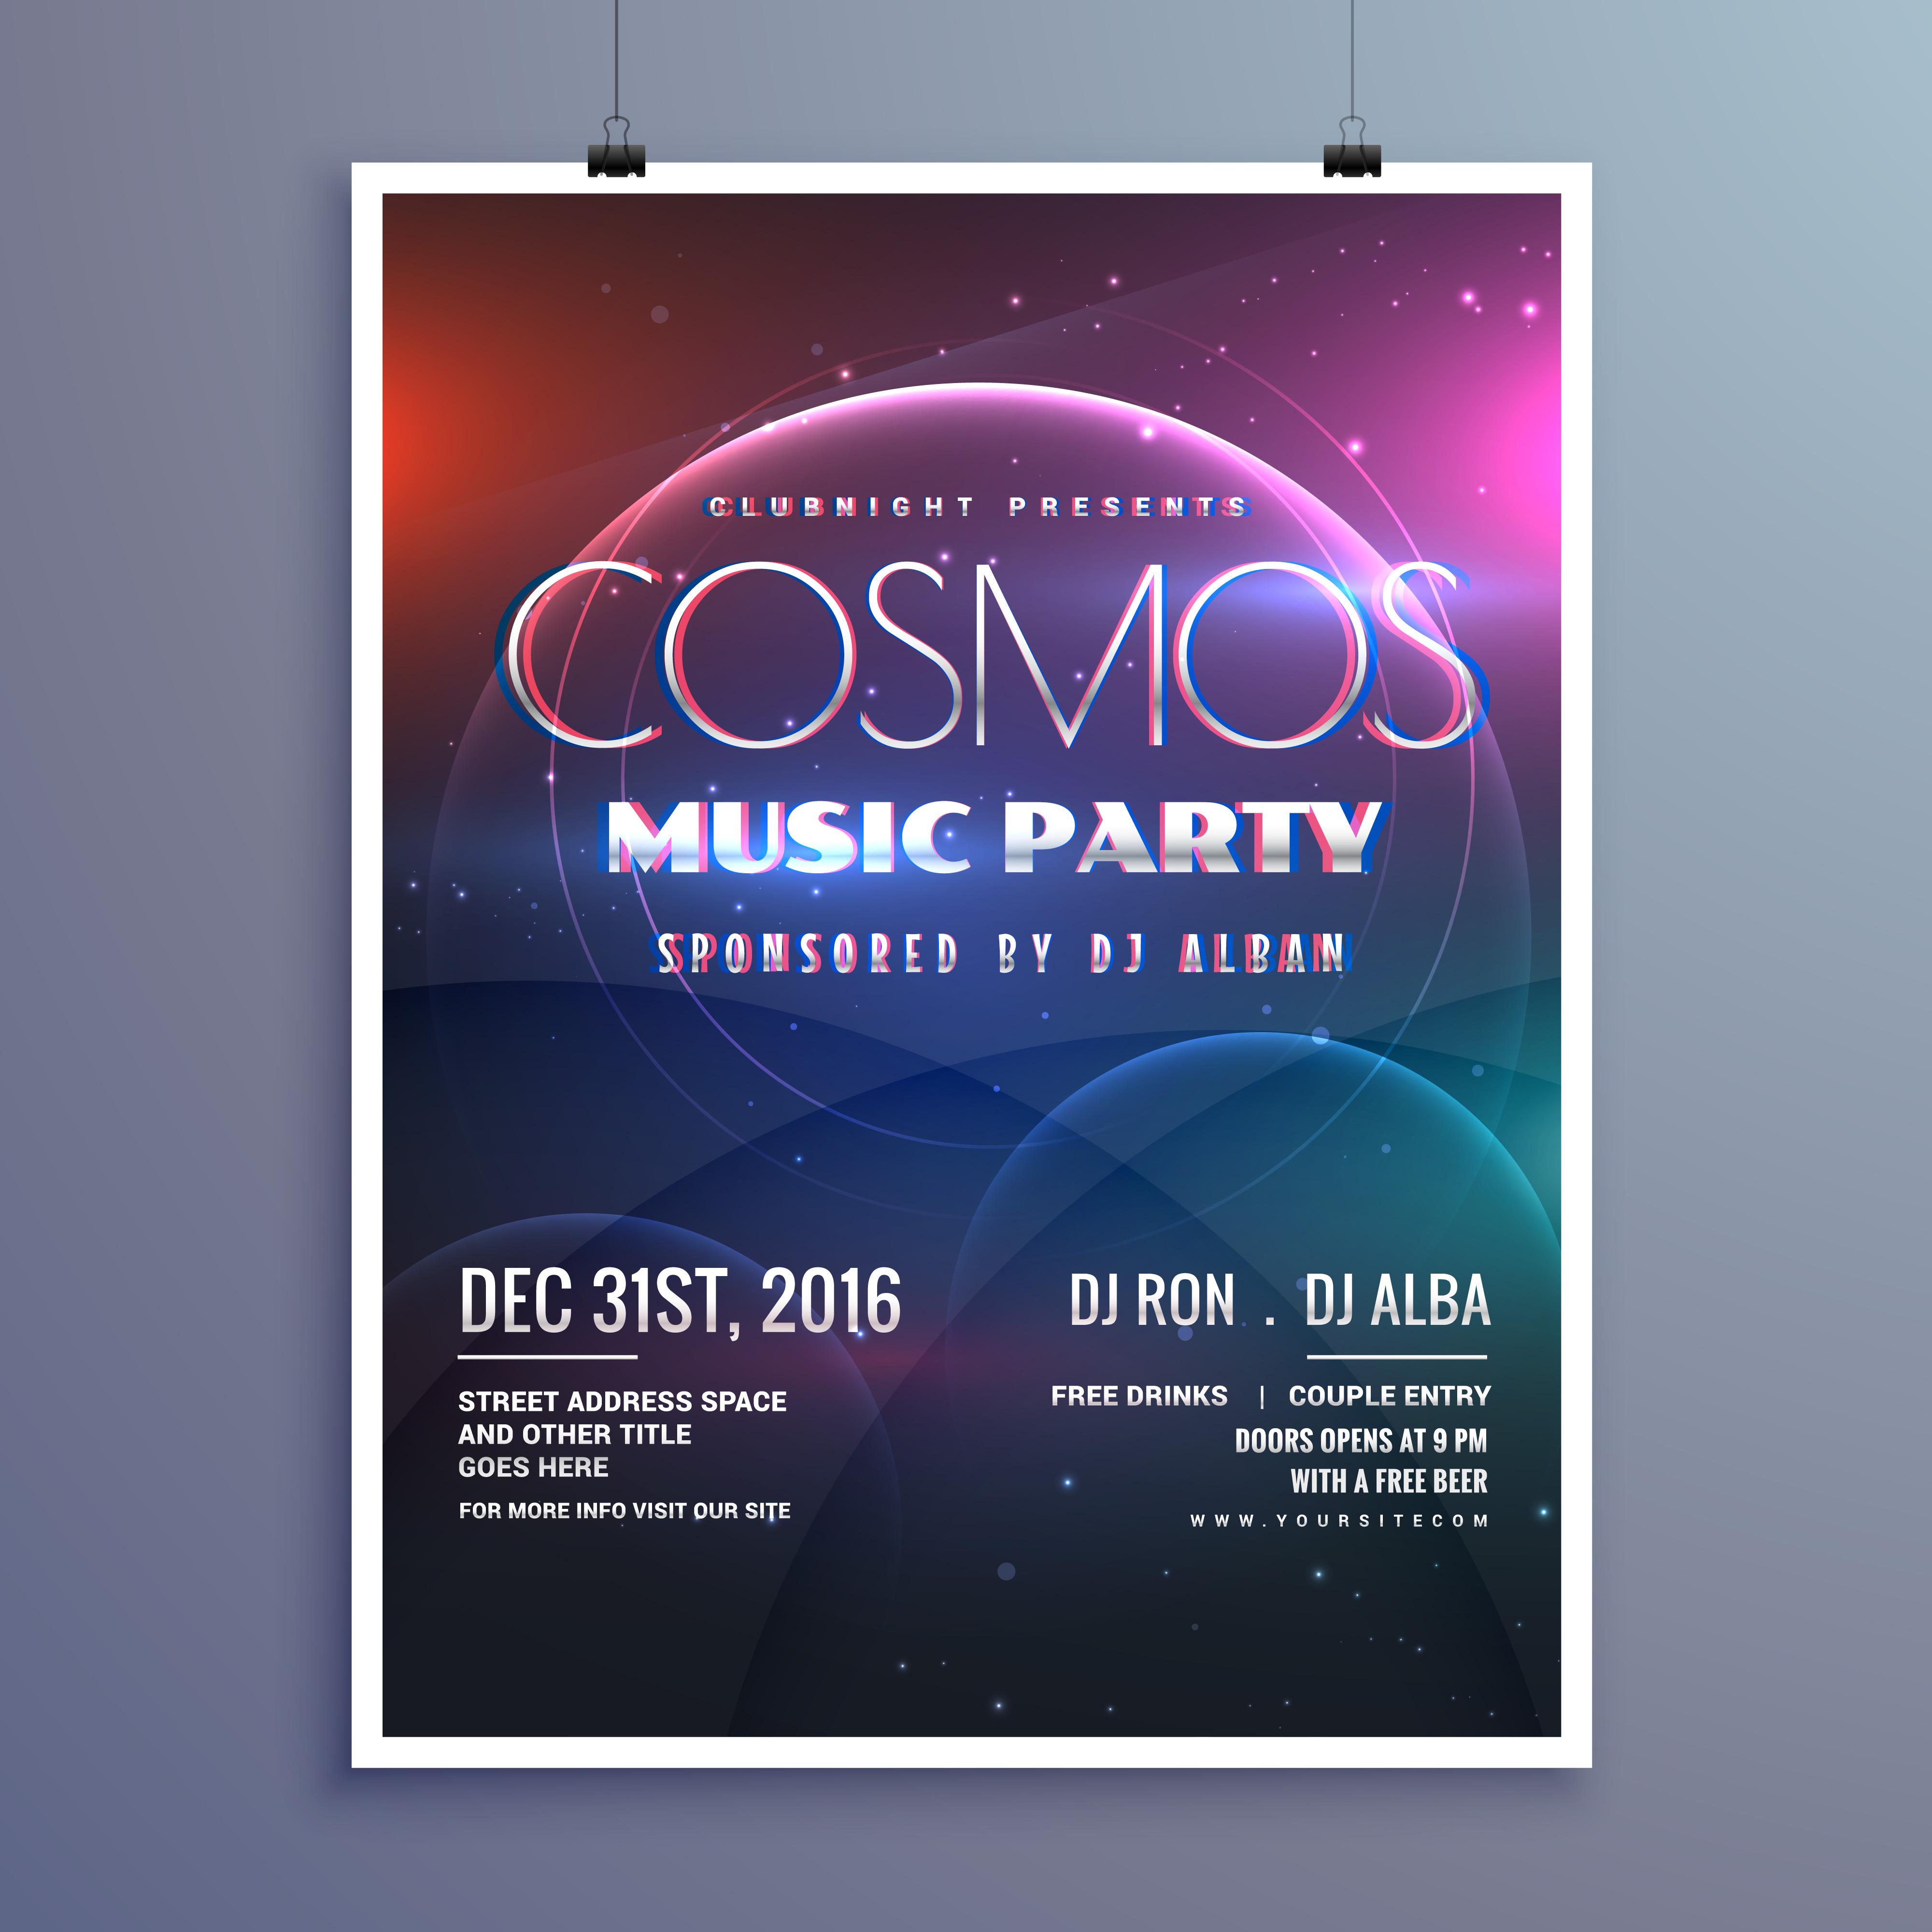 event brochure templates - cosmos music party event flyer template in modern creative